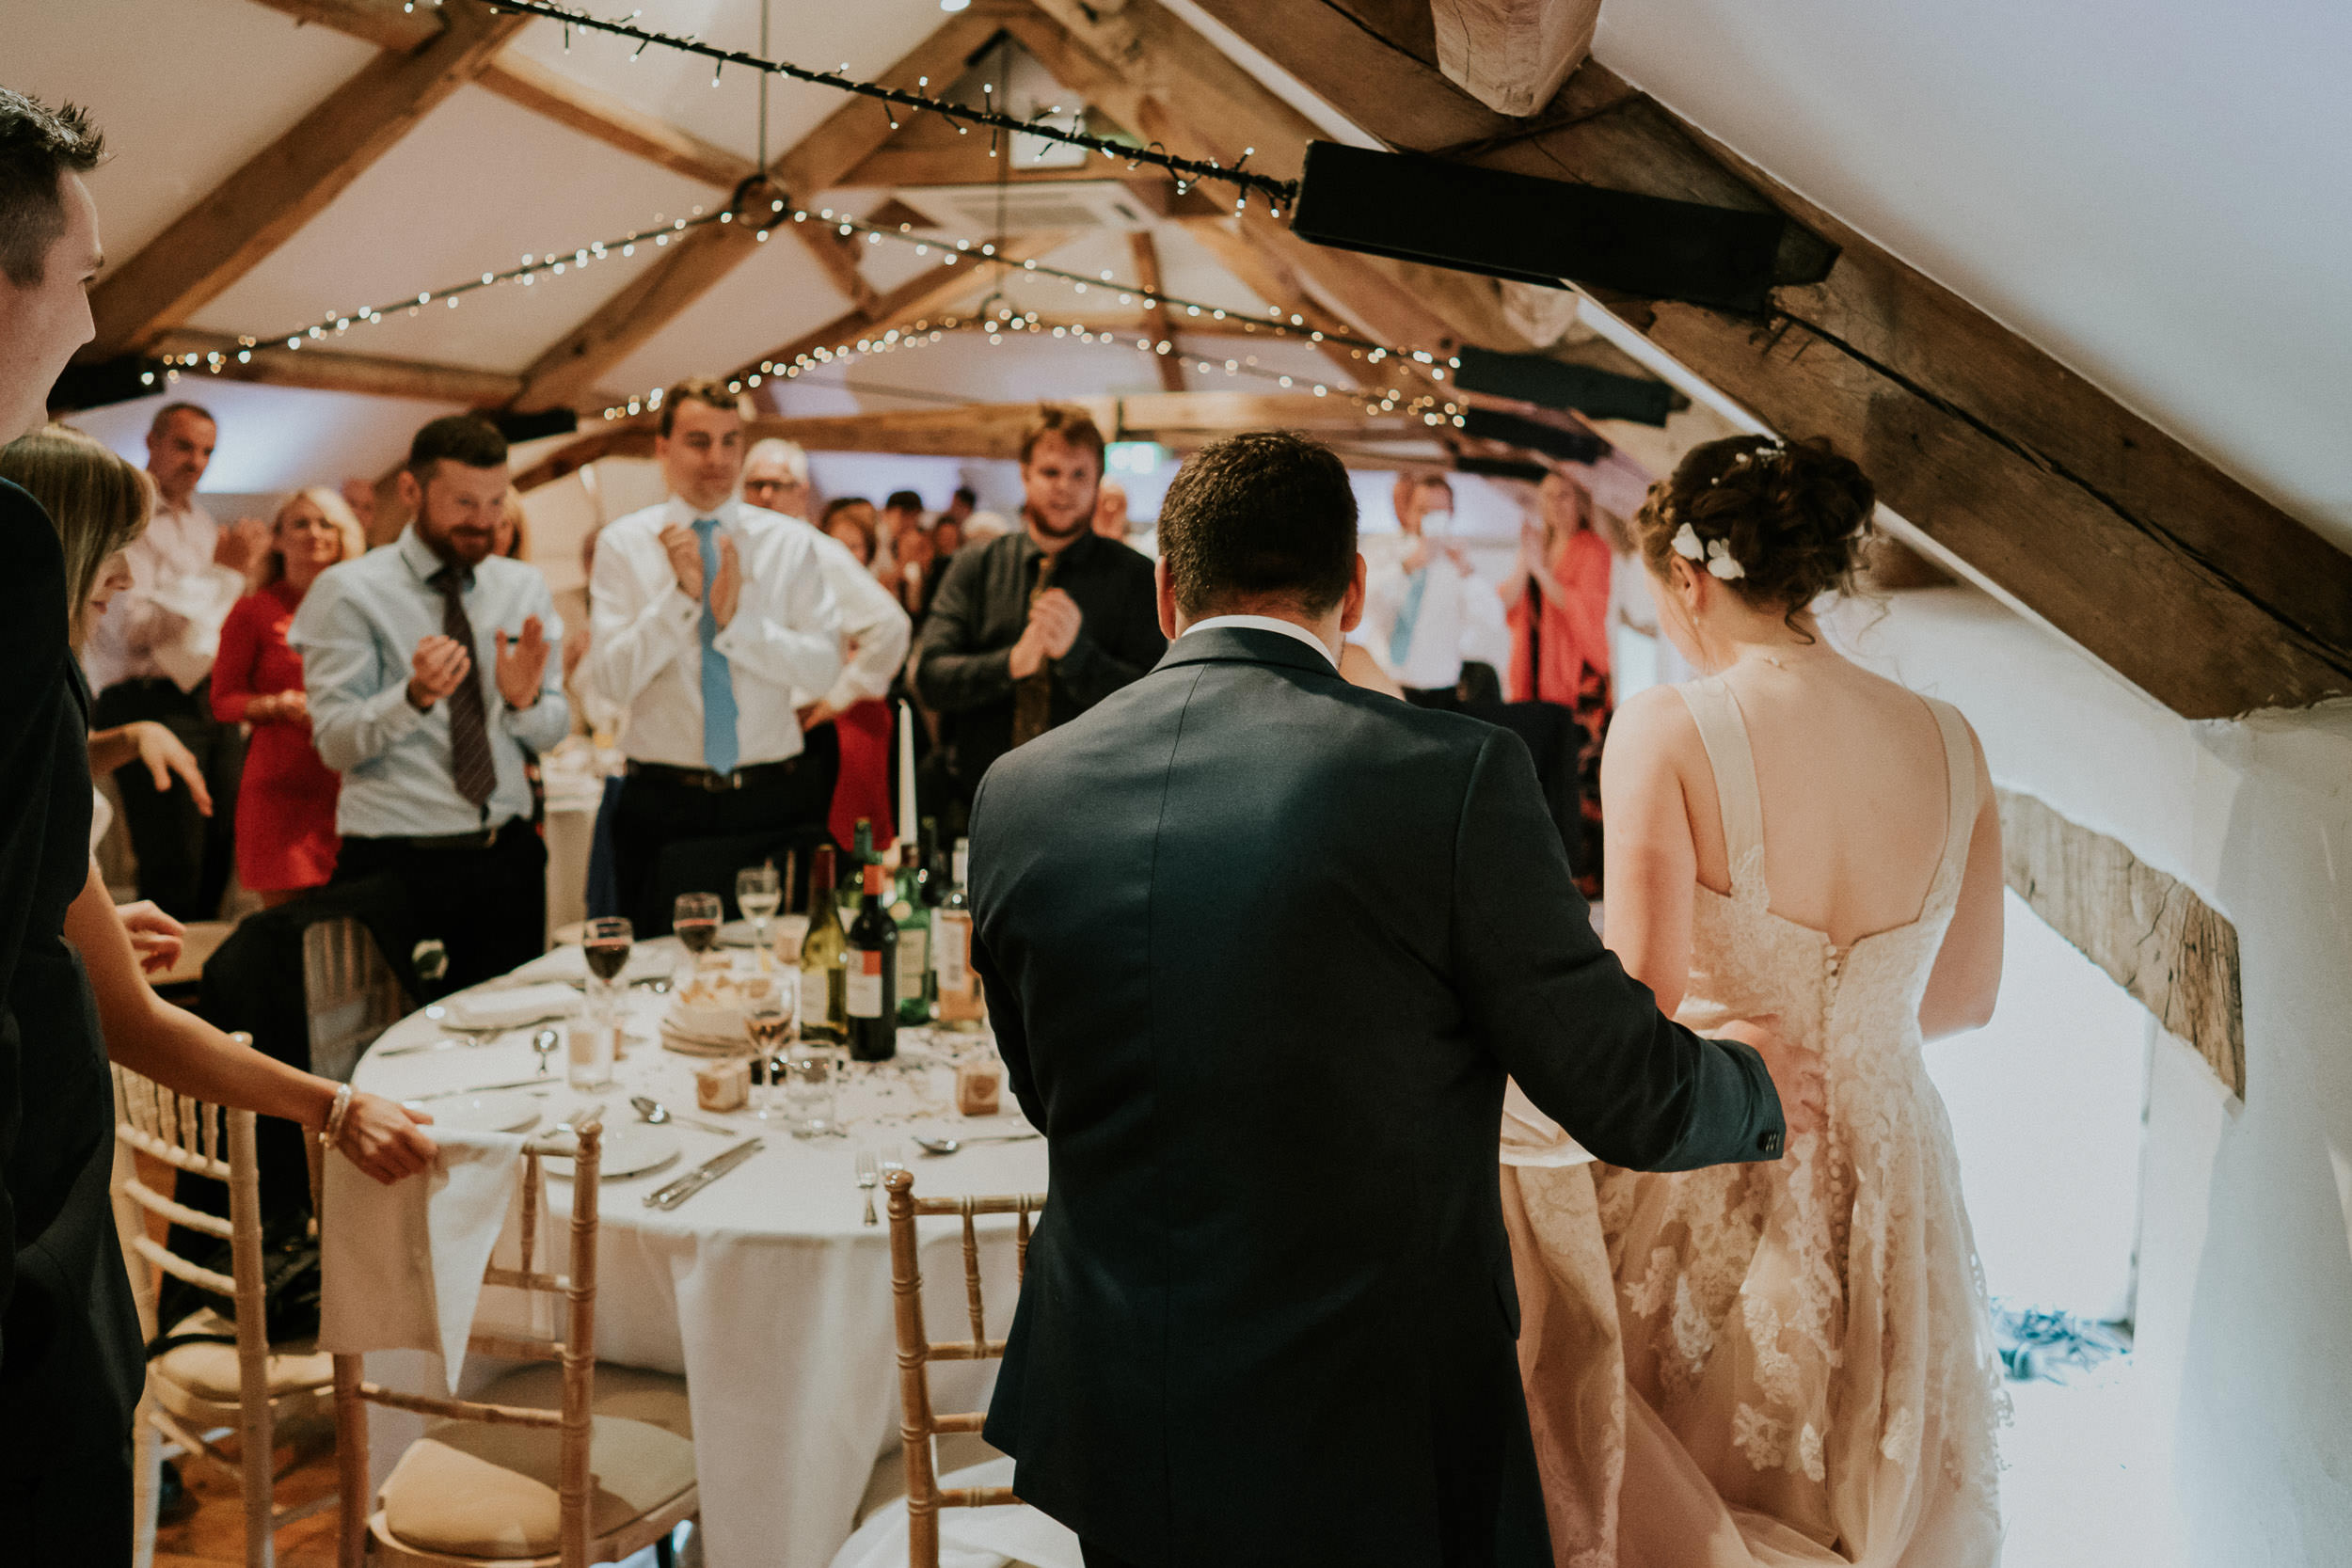 Pennard House Wedding - Bride and Groom Wedding Breakfast